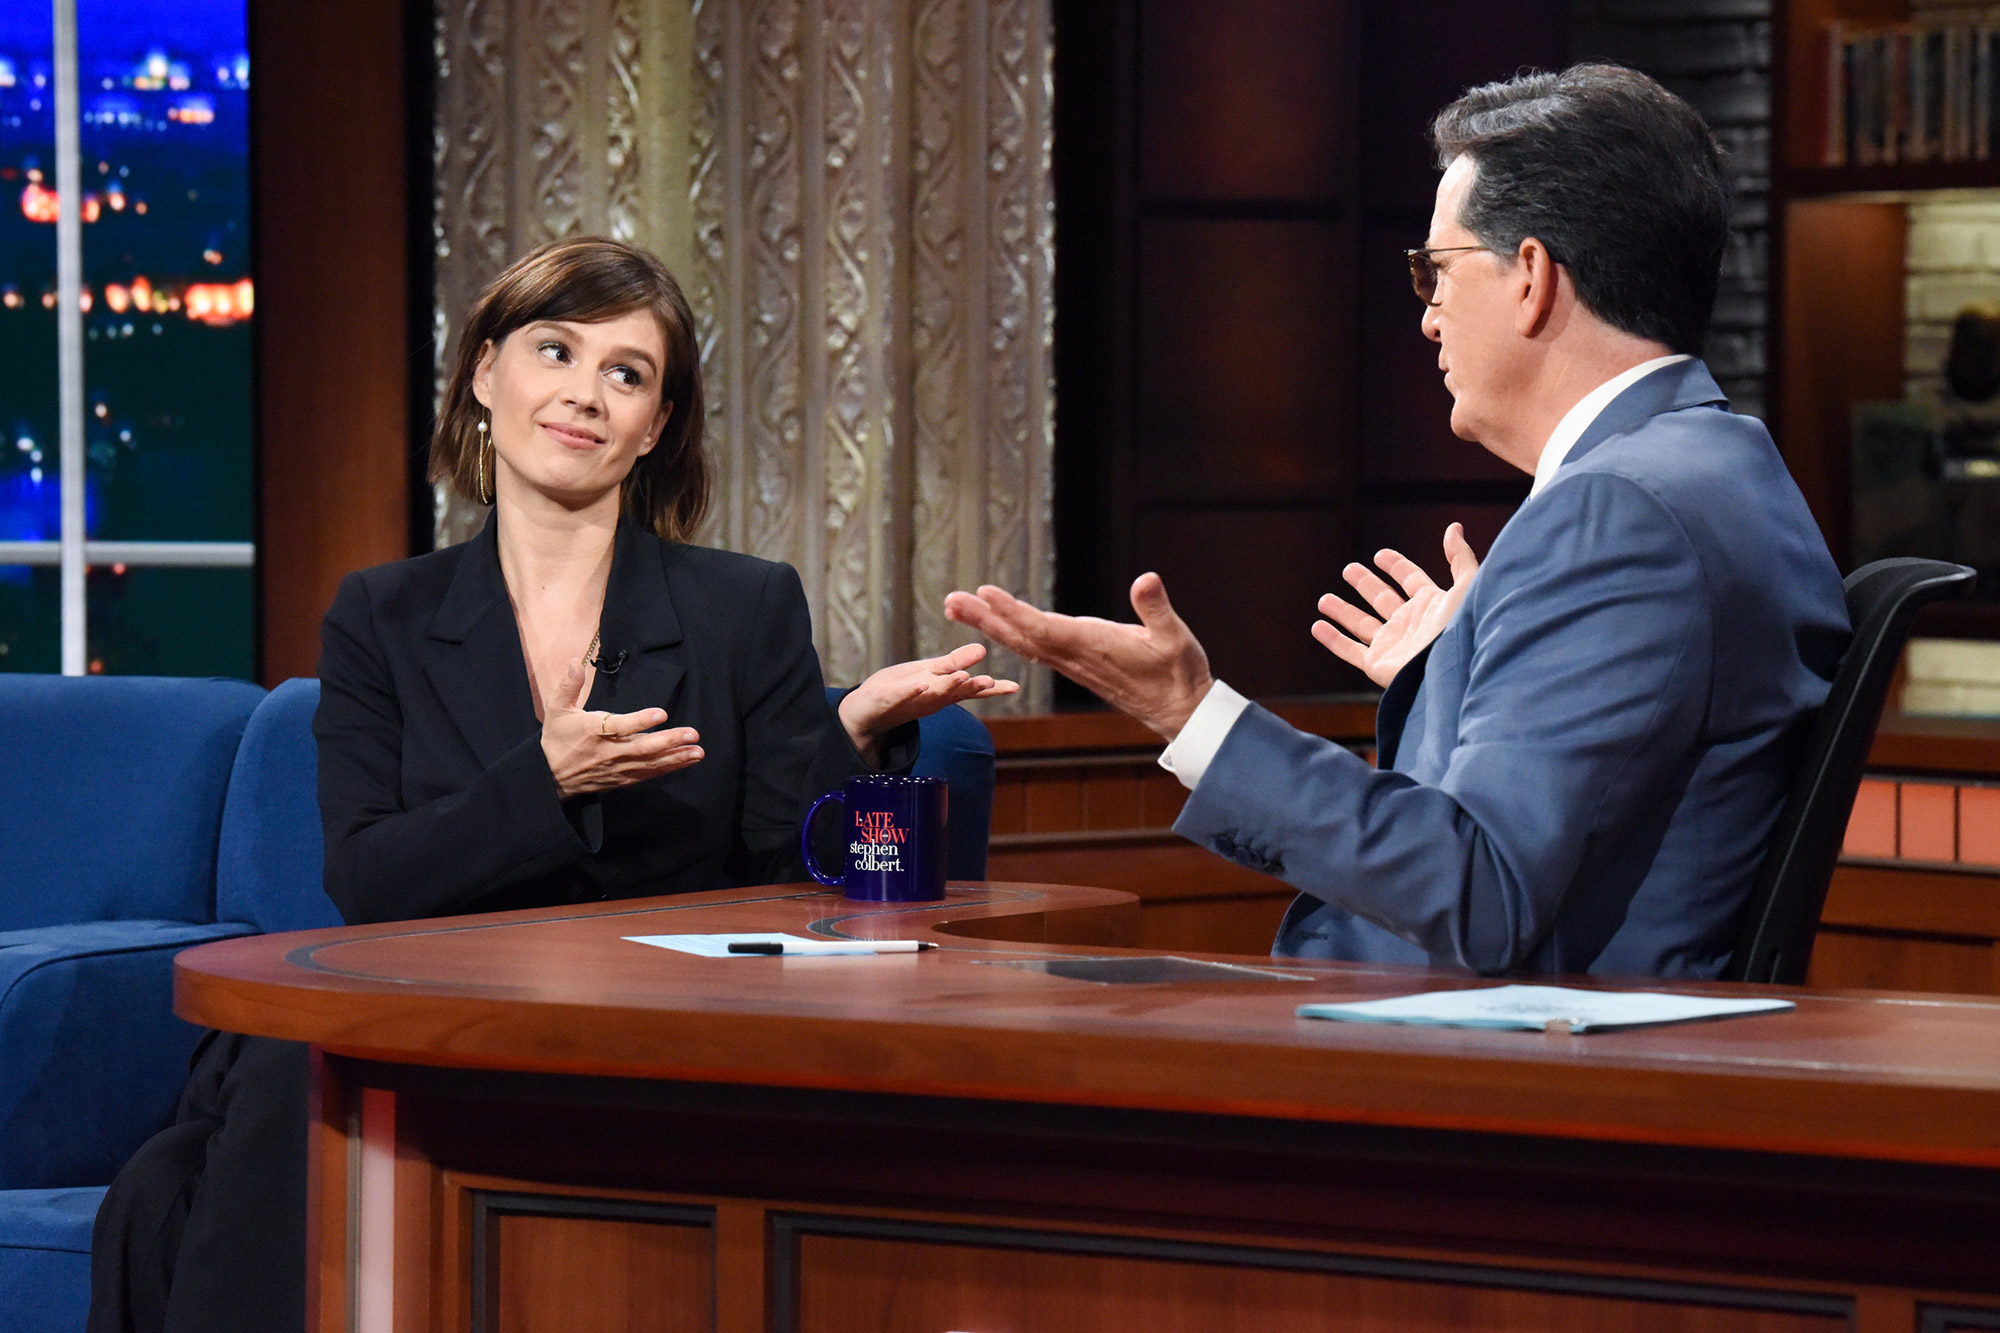 The Late Show with Stephen Colbert and guest Katja Herbers during Monday's June 28, 2021 show